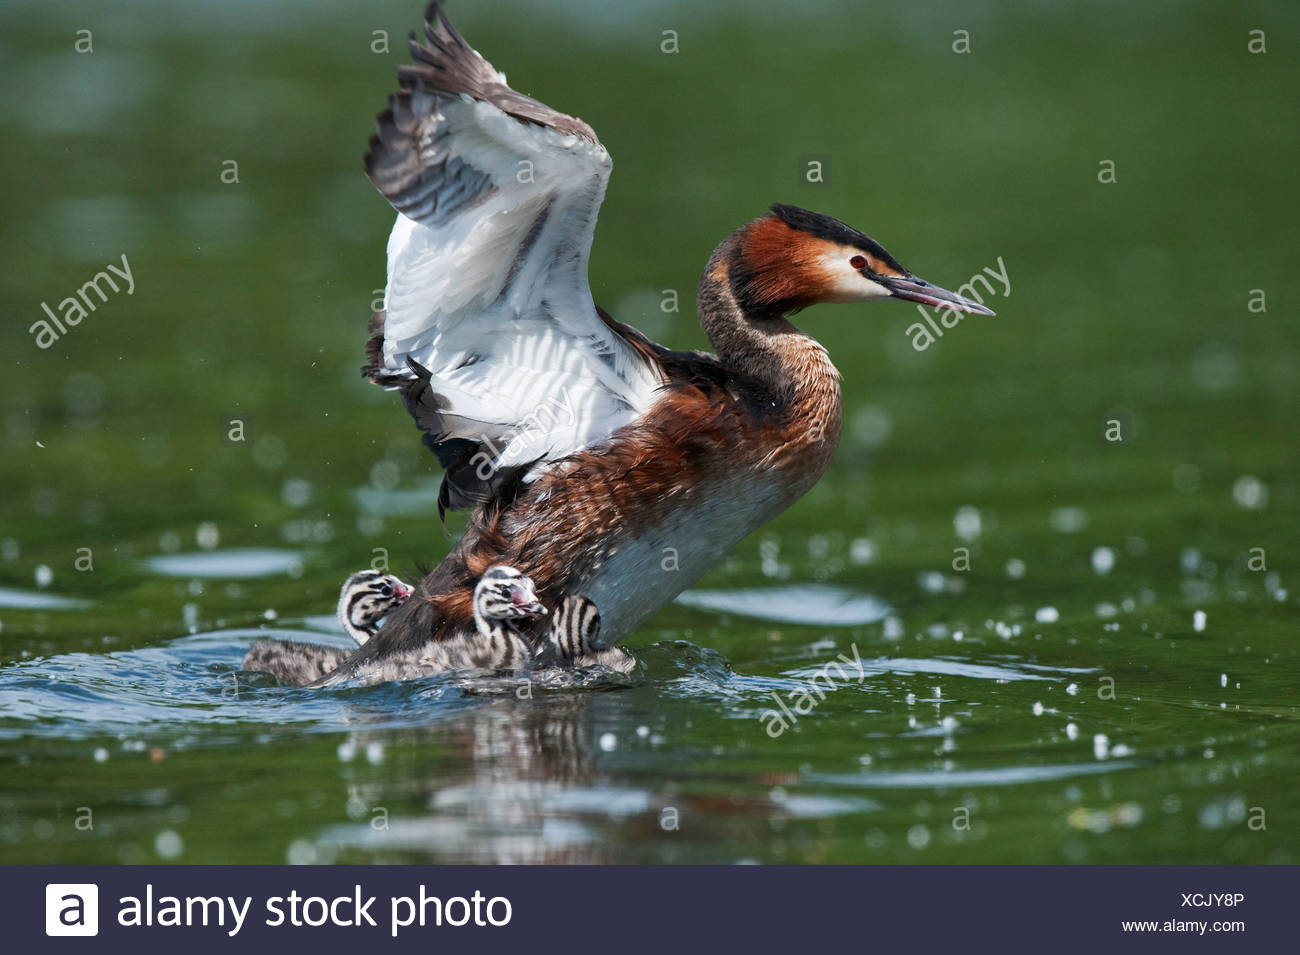 Great crested grebe stretching wings with chicks on lake UK - Stock Image